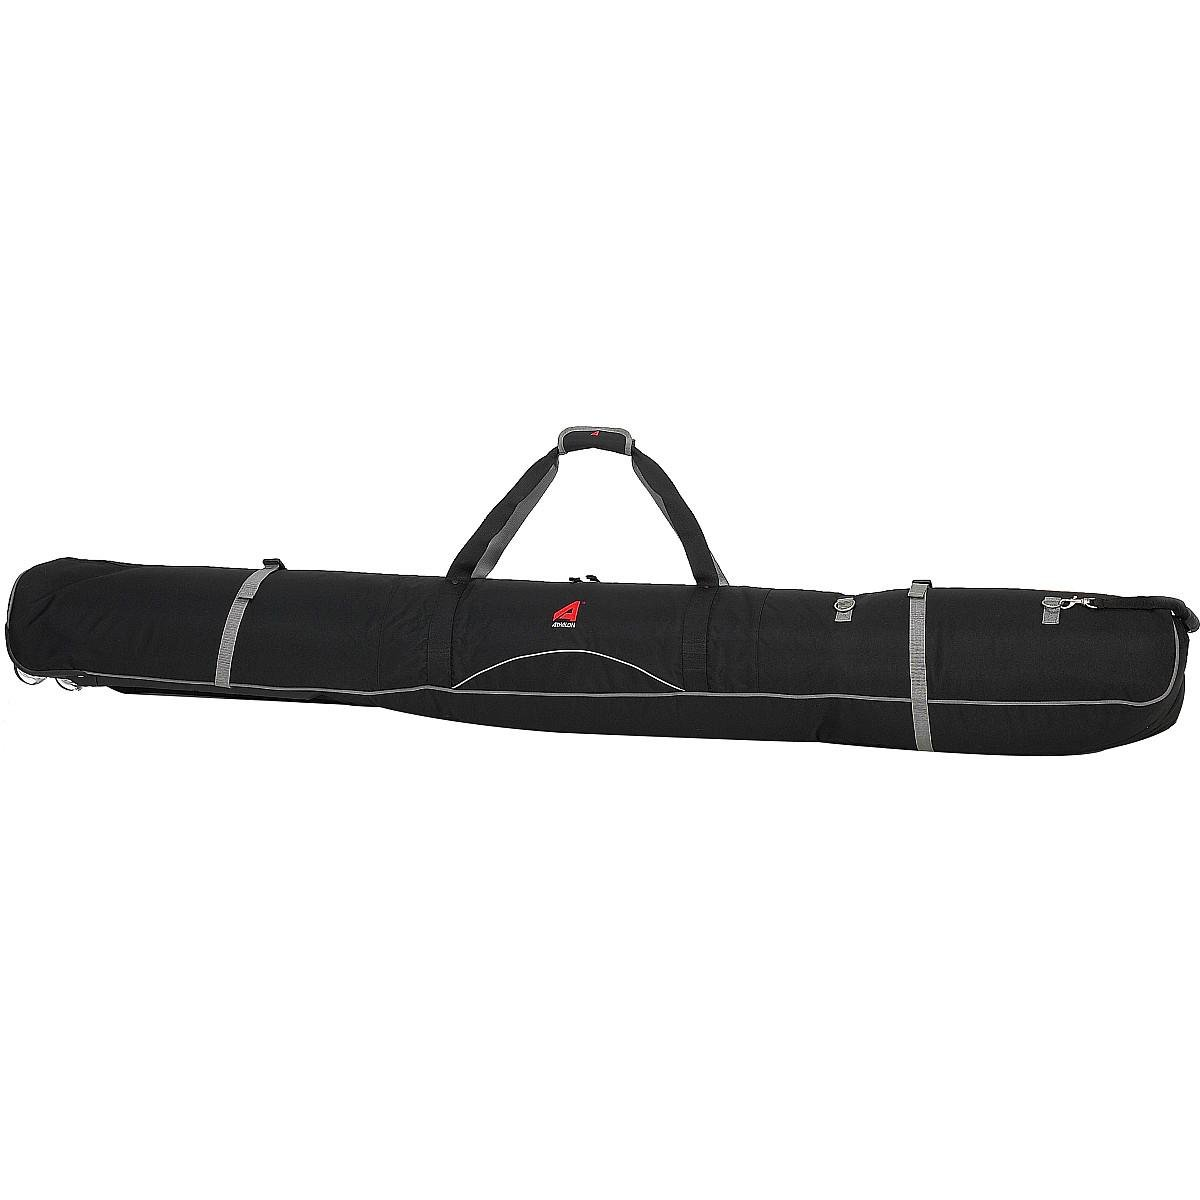 ATHALON WHEELING DOUBLE PADDED SKI BAG -190CM BLACK by Athalon